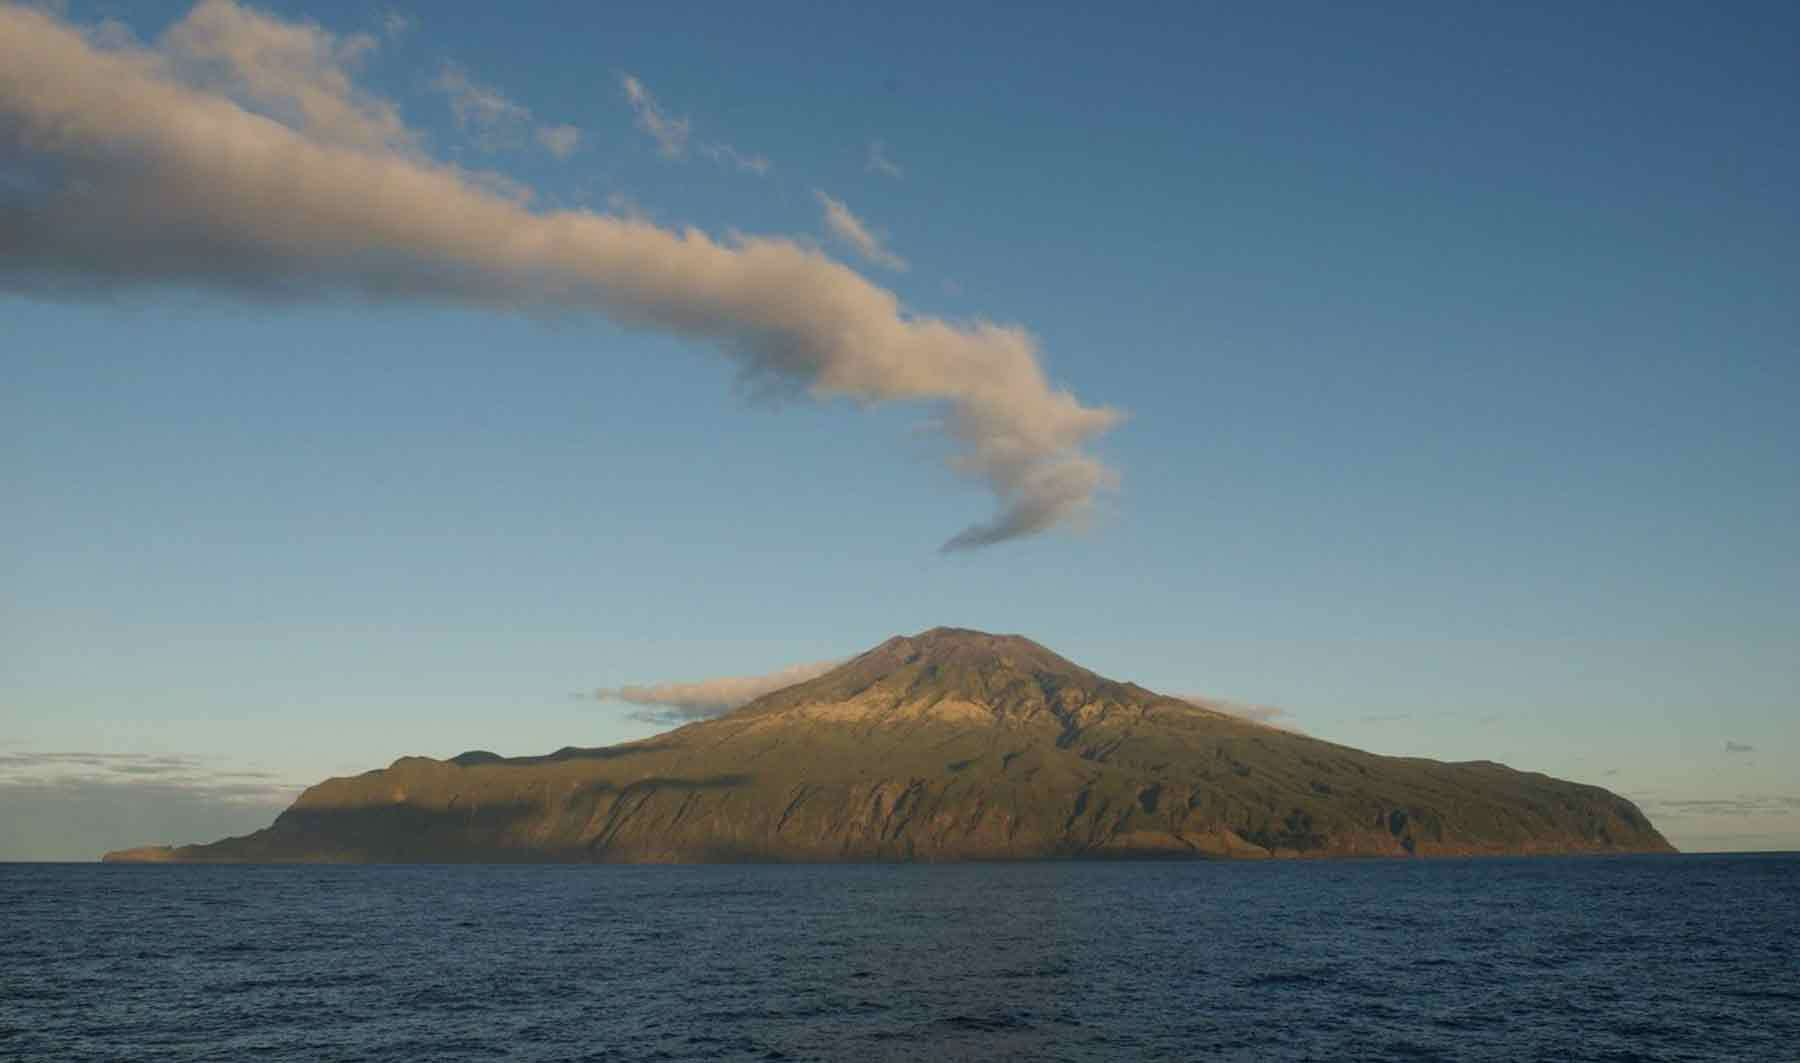 The island of Tristan da Cunha. A volcano shaped island with a drift of clouds above and blue sky and ocean in foreground.